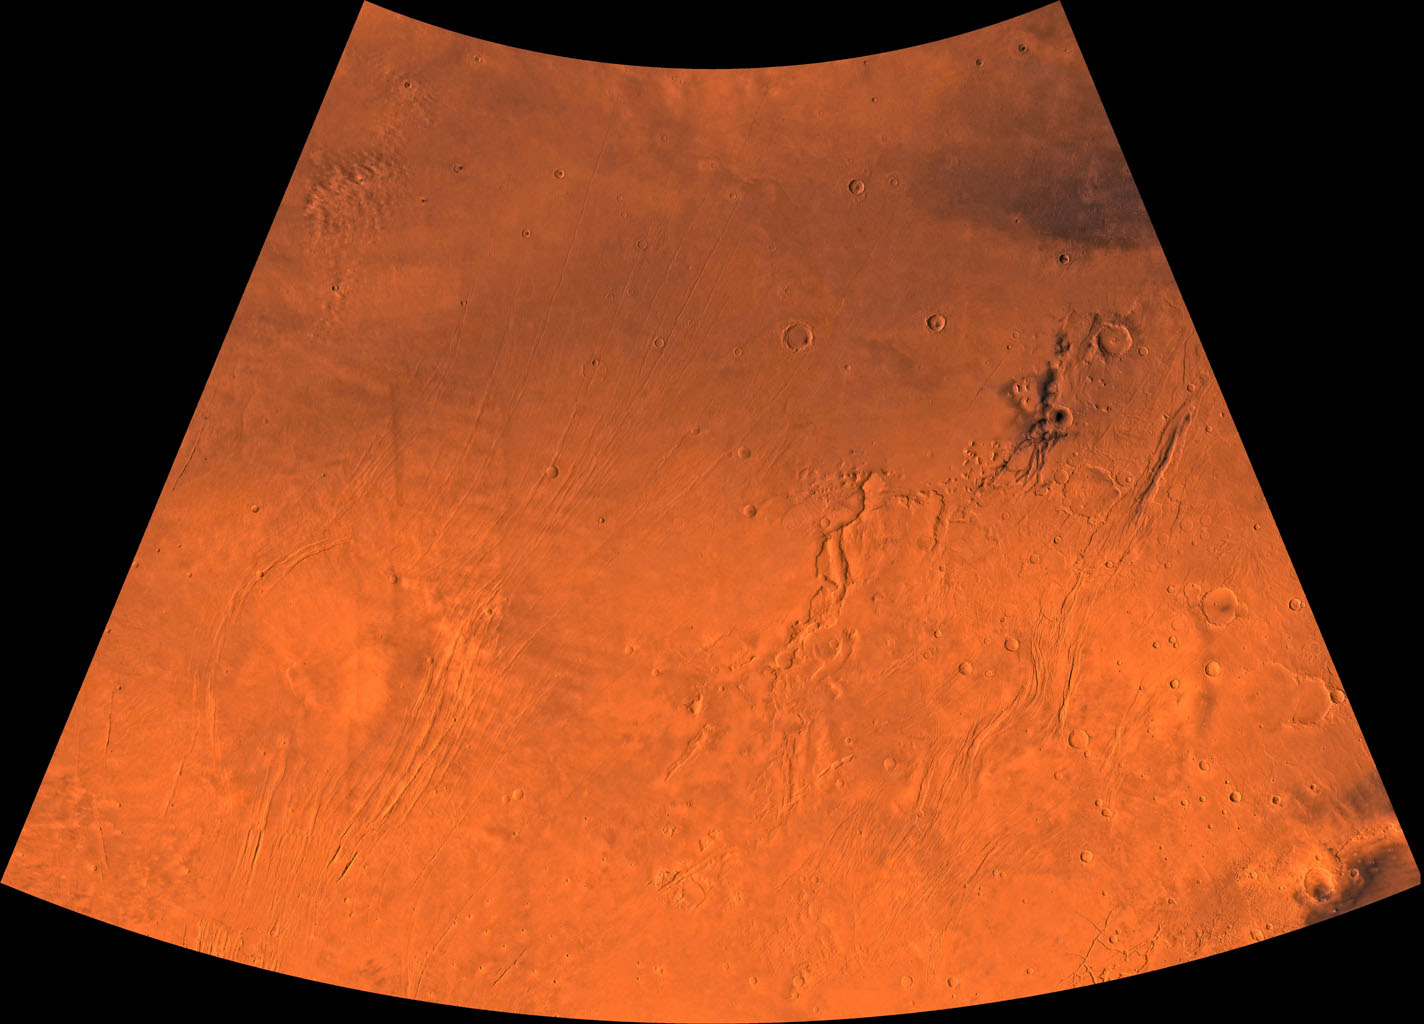 Mars digital-image mosaic merged with color of the MC-3 quadrangle, Arcadia region of Mars. This image is from NASA's Viking Orbiter 1.